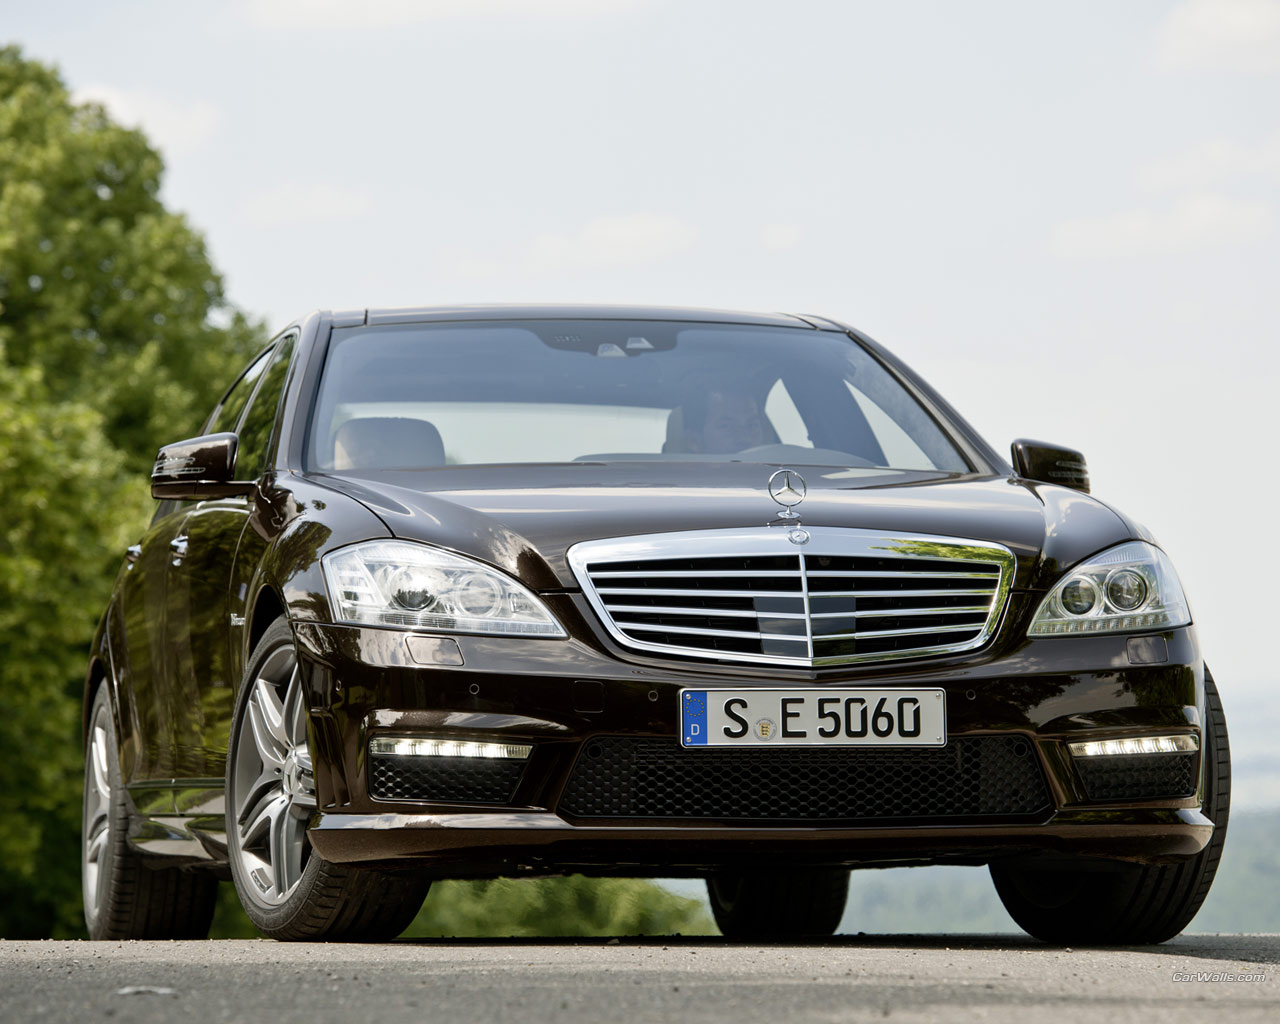 2010 mercedes benz s class pictures cargurus for Mercedes benz s63 amg 2010